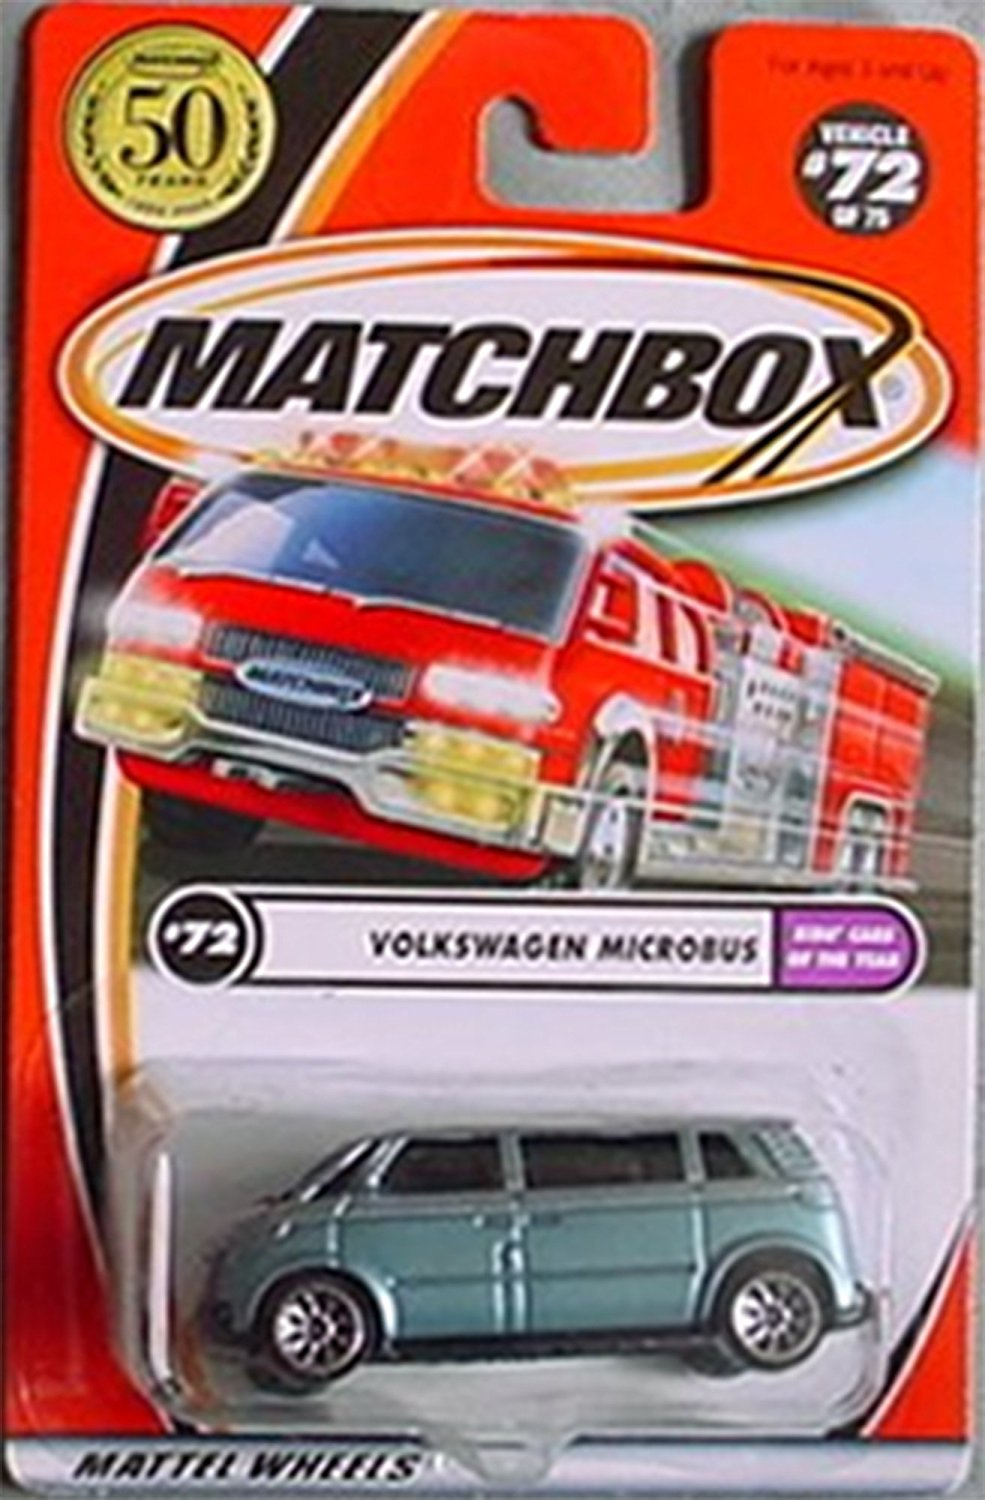 2002-72 Volkswagen Microbus Kids' Cars of the Year LIGHT BLUE 1:64 Scale, VW MICROBUS 50... by